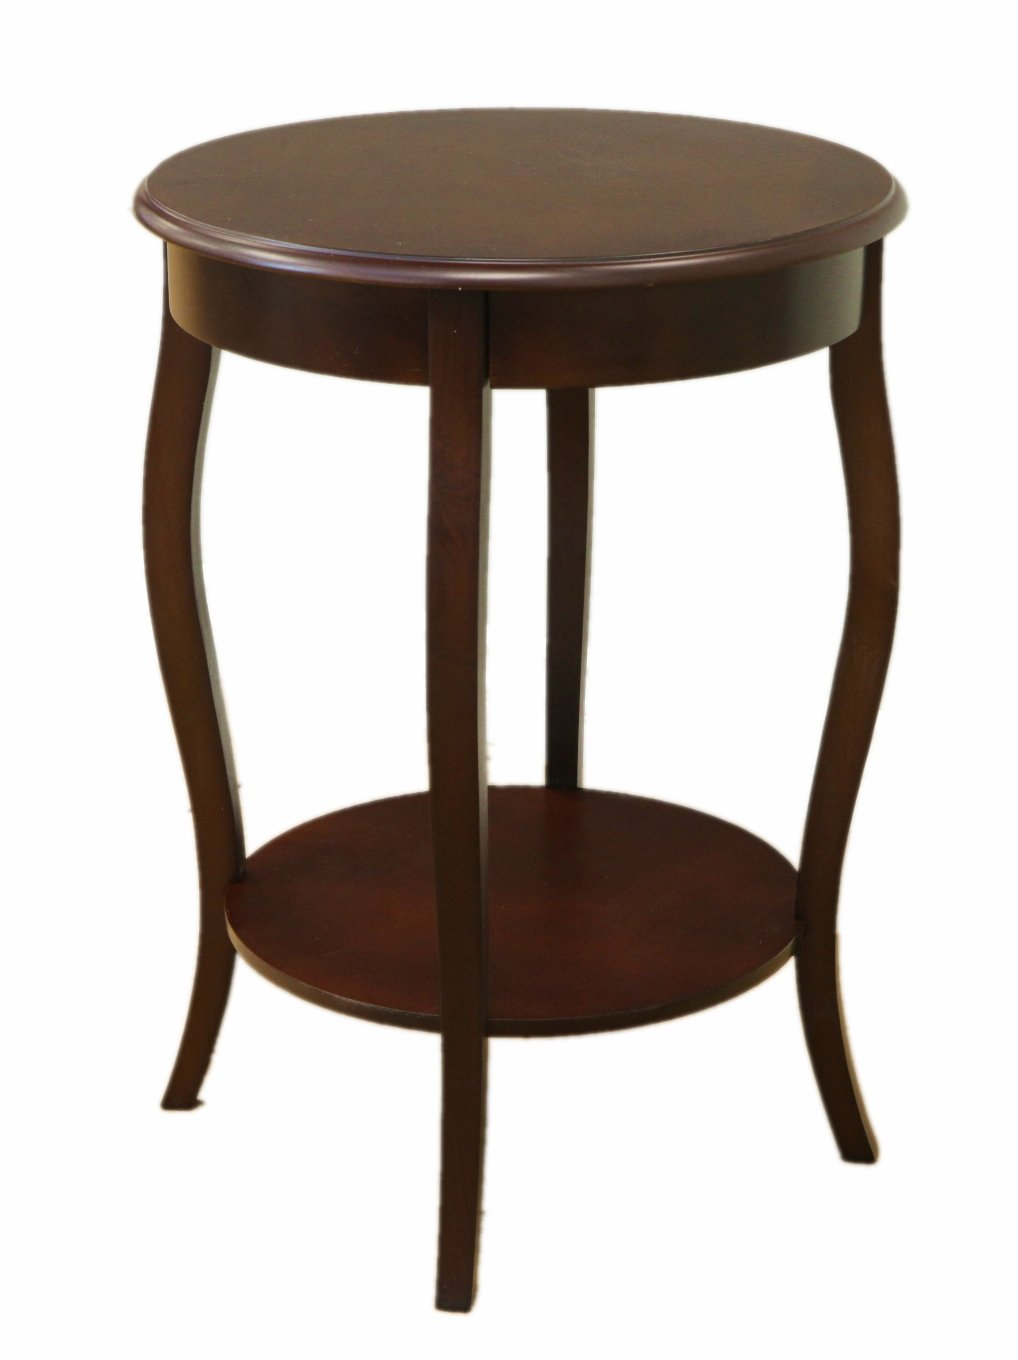 Frenchi home furnishing walnut round accent table 18 inch for 12 inch accent table